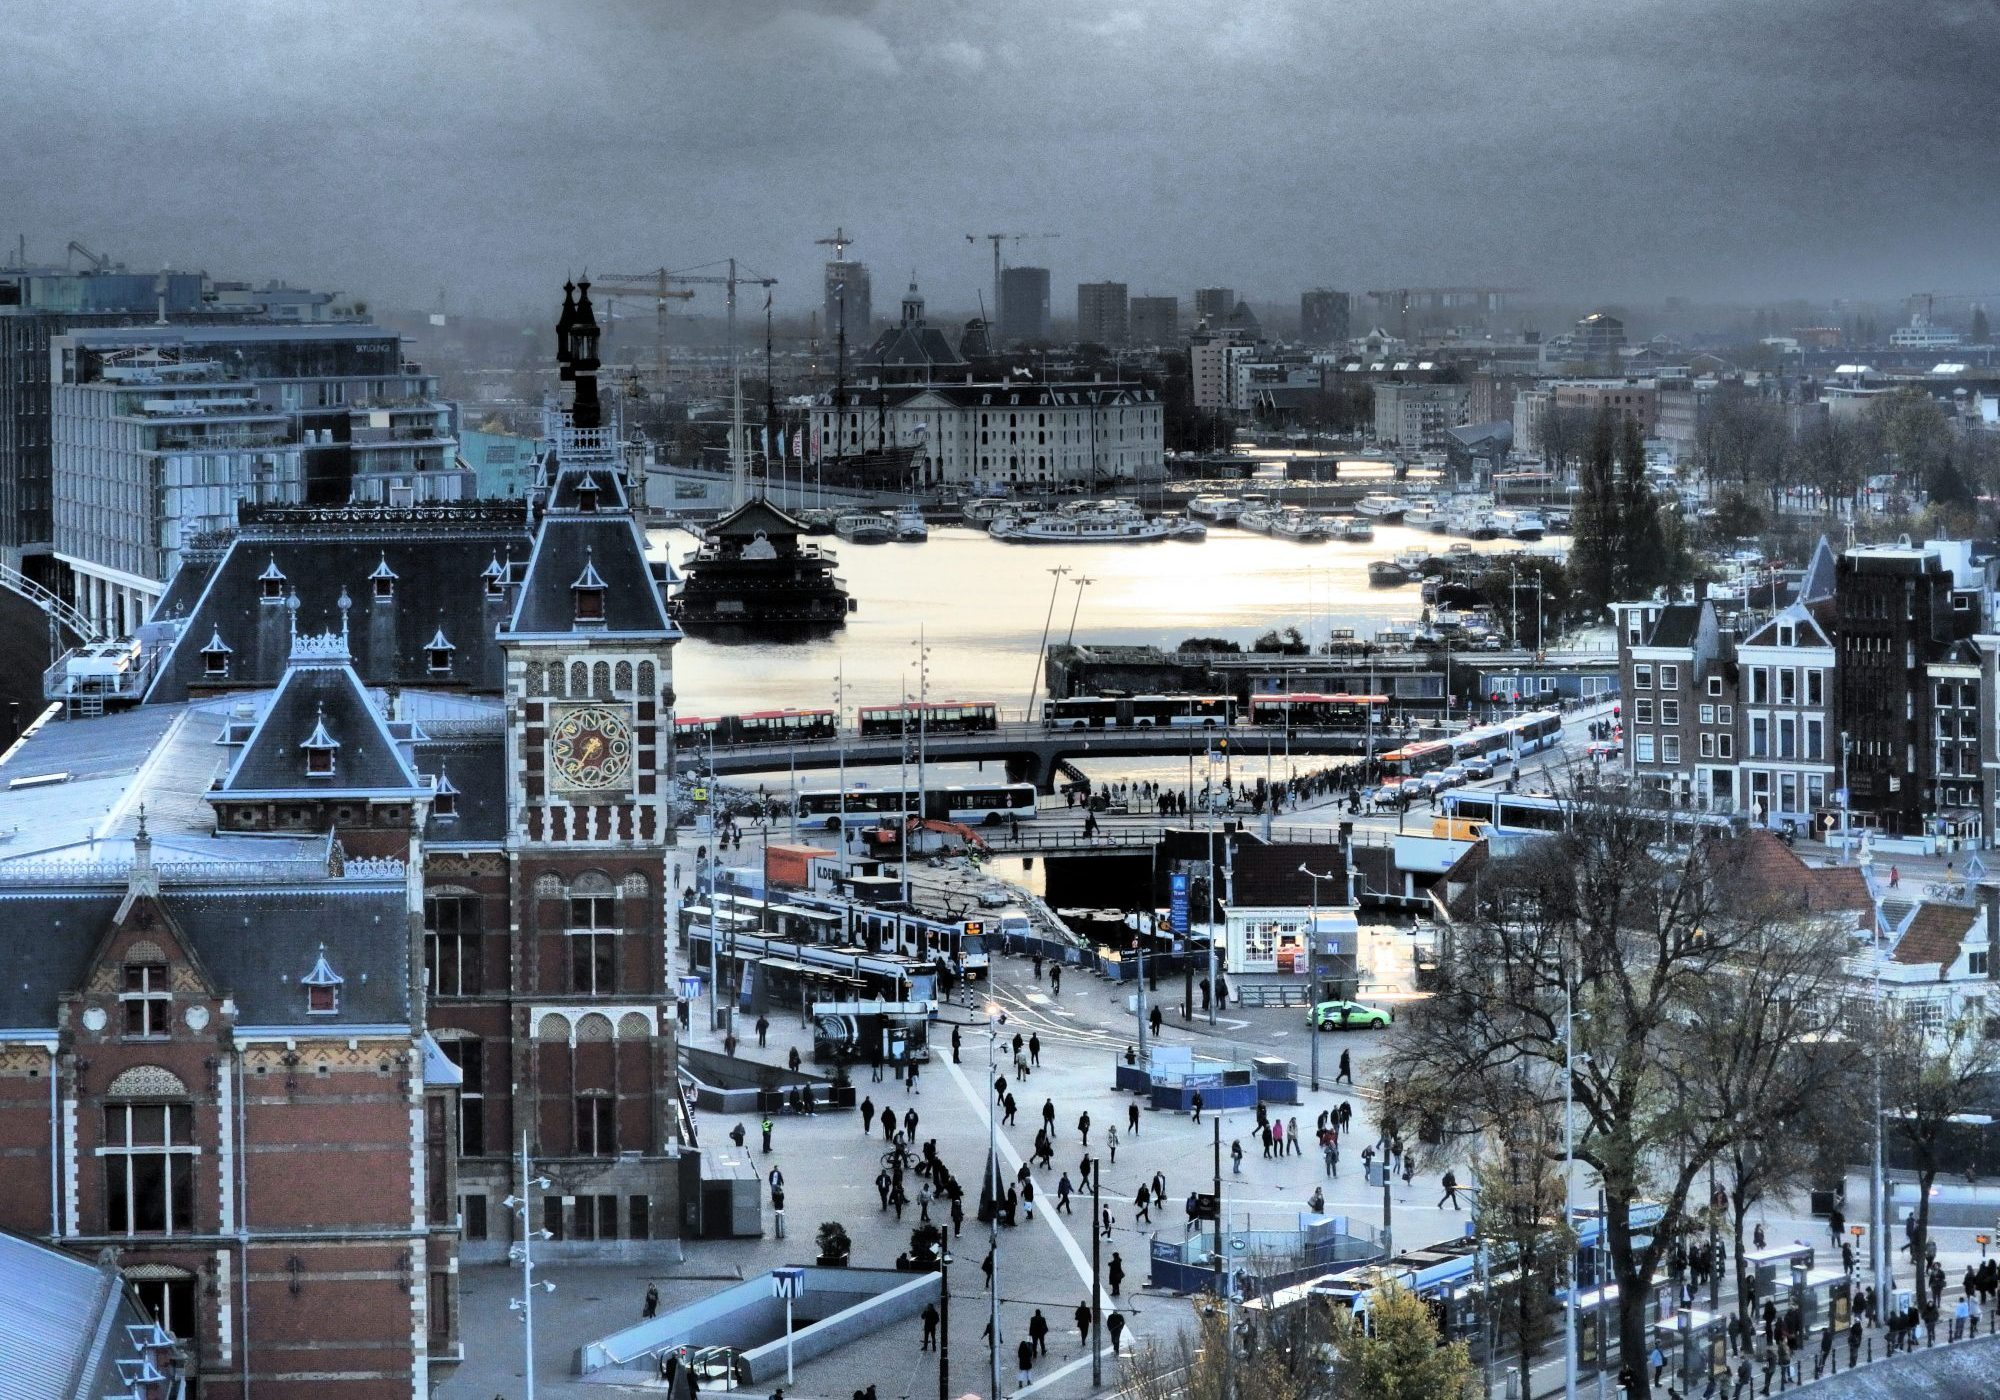 This picture shows Amsterdam Central on the left, and the plaza with tram stops in front of it.